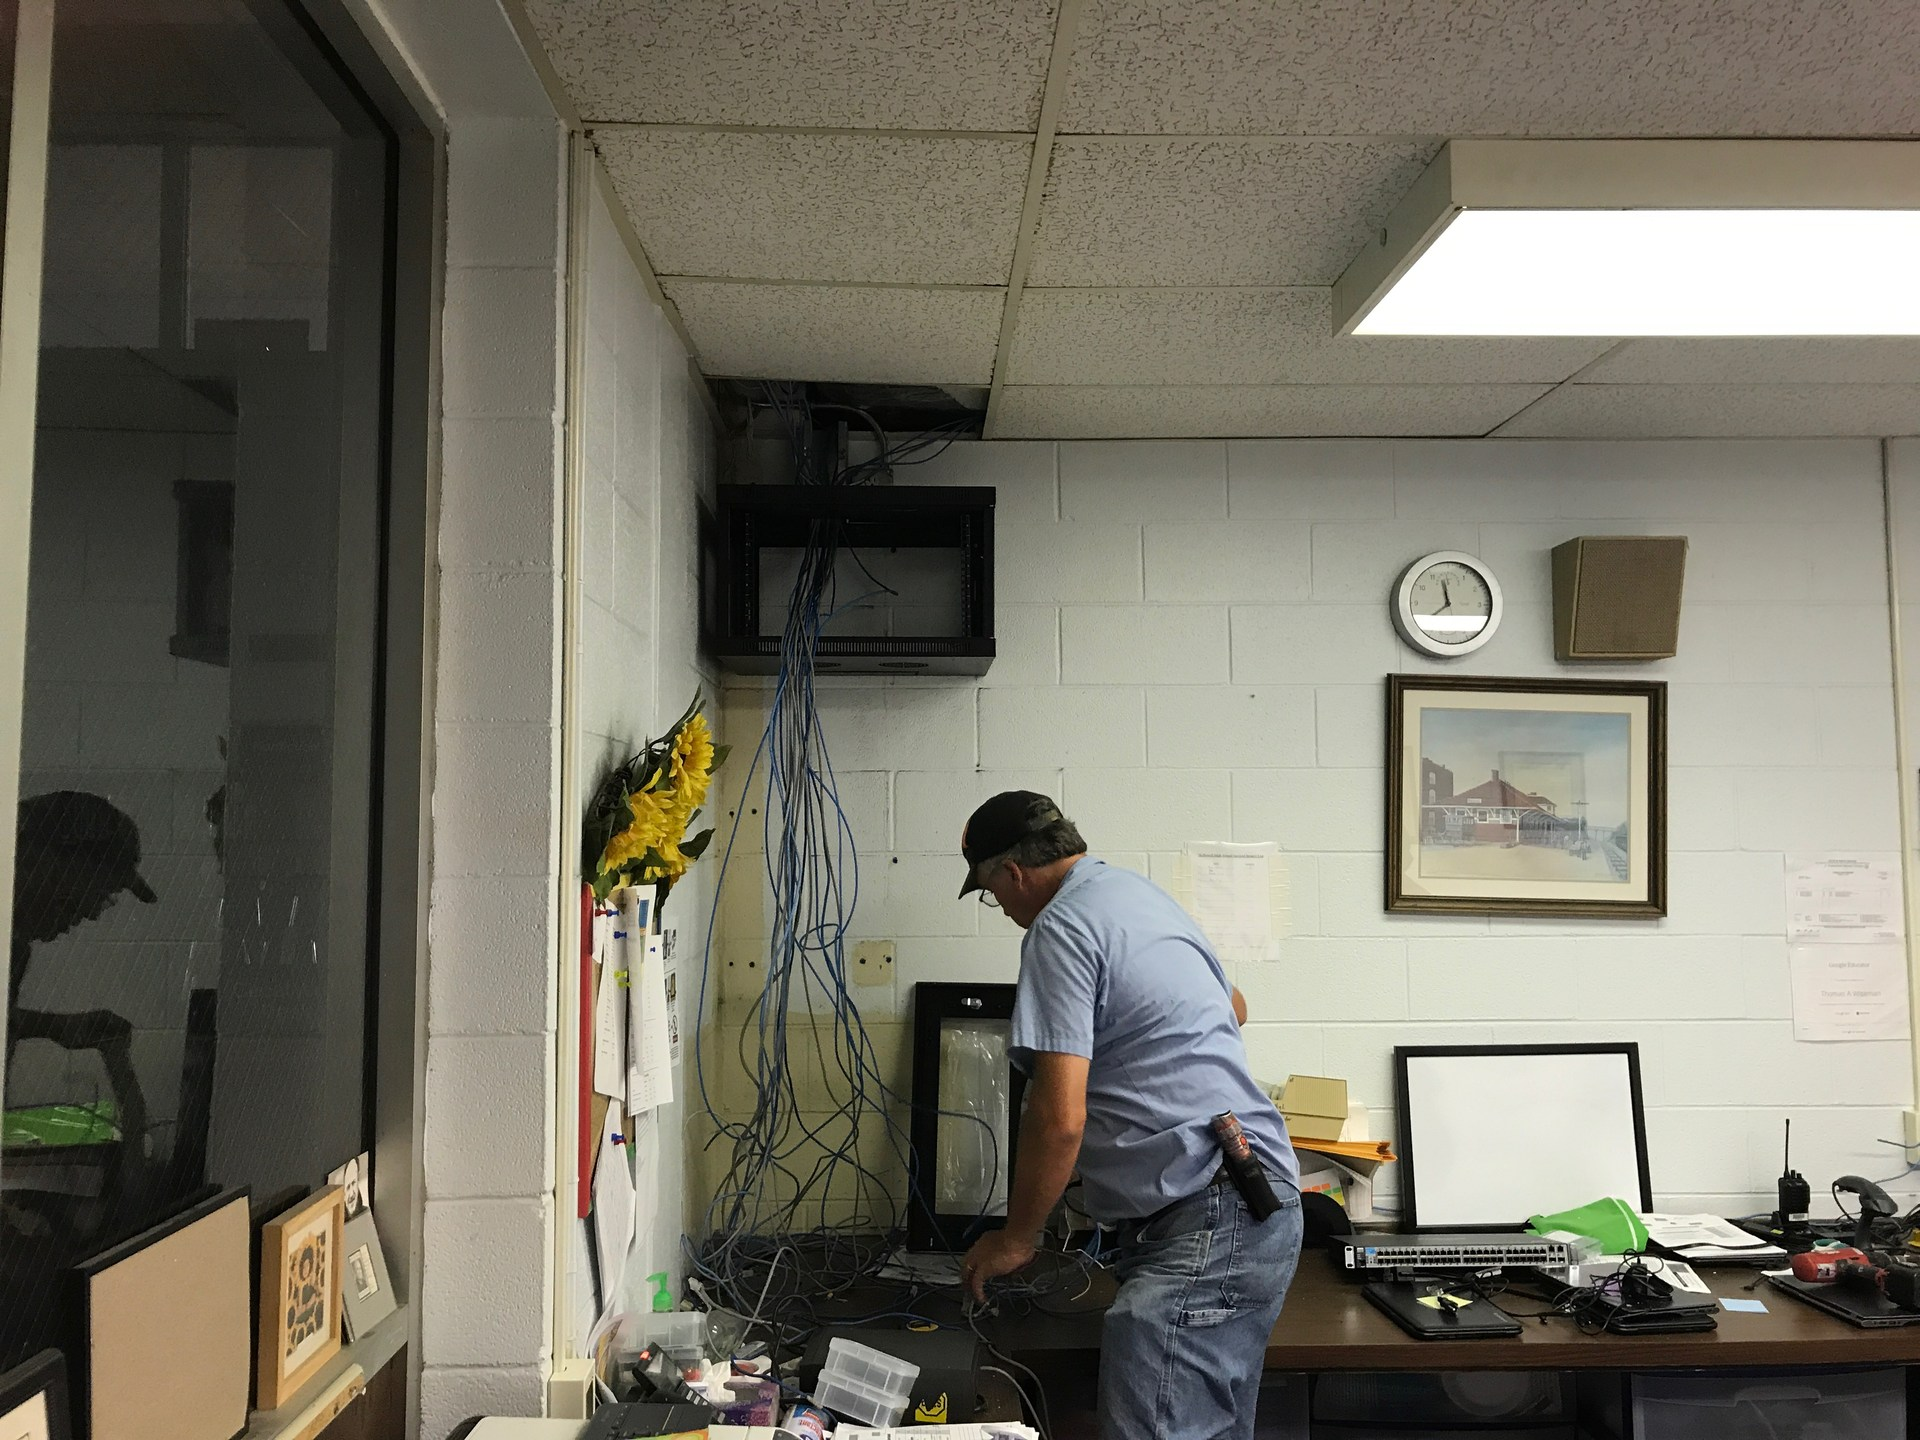 Maintenance department assisting with wiring